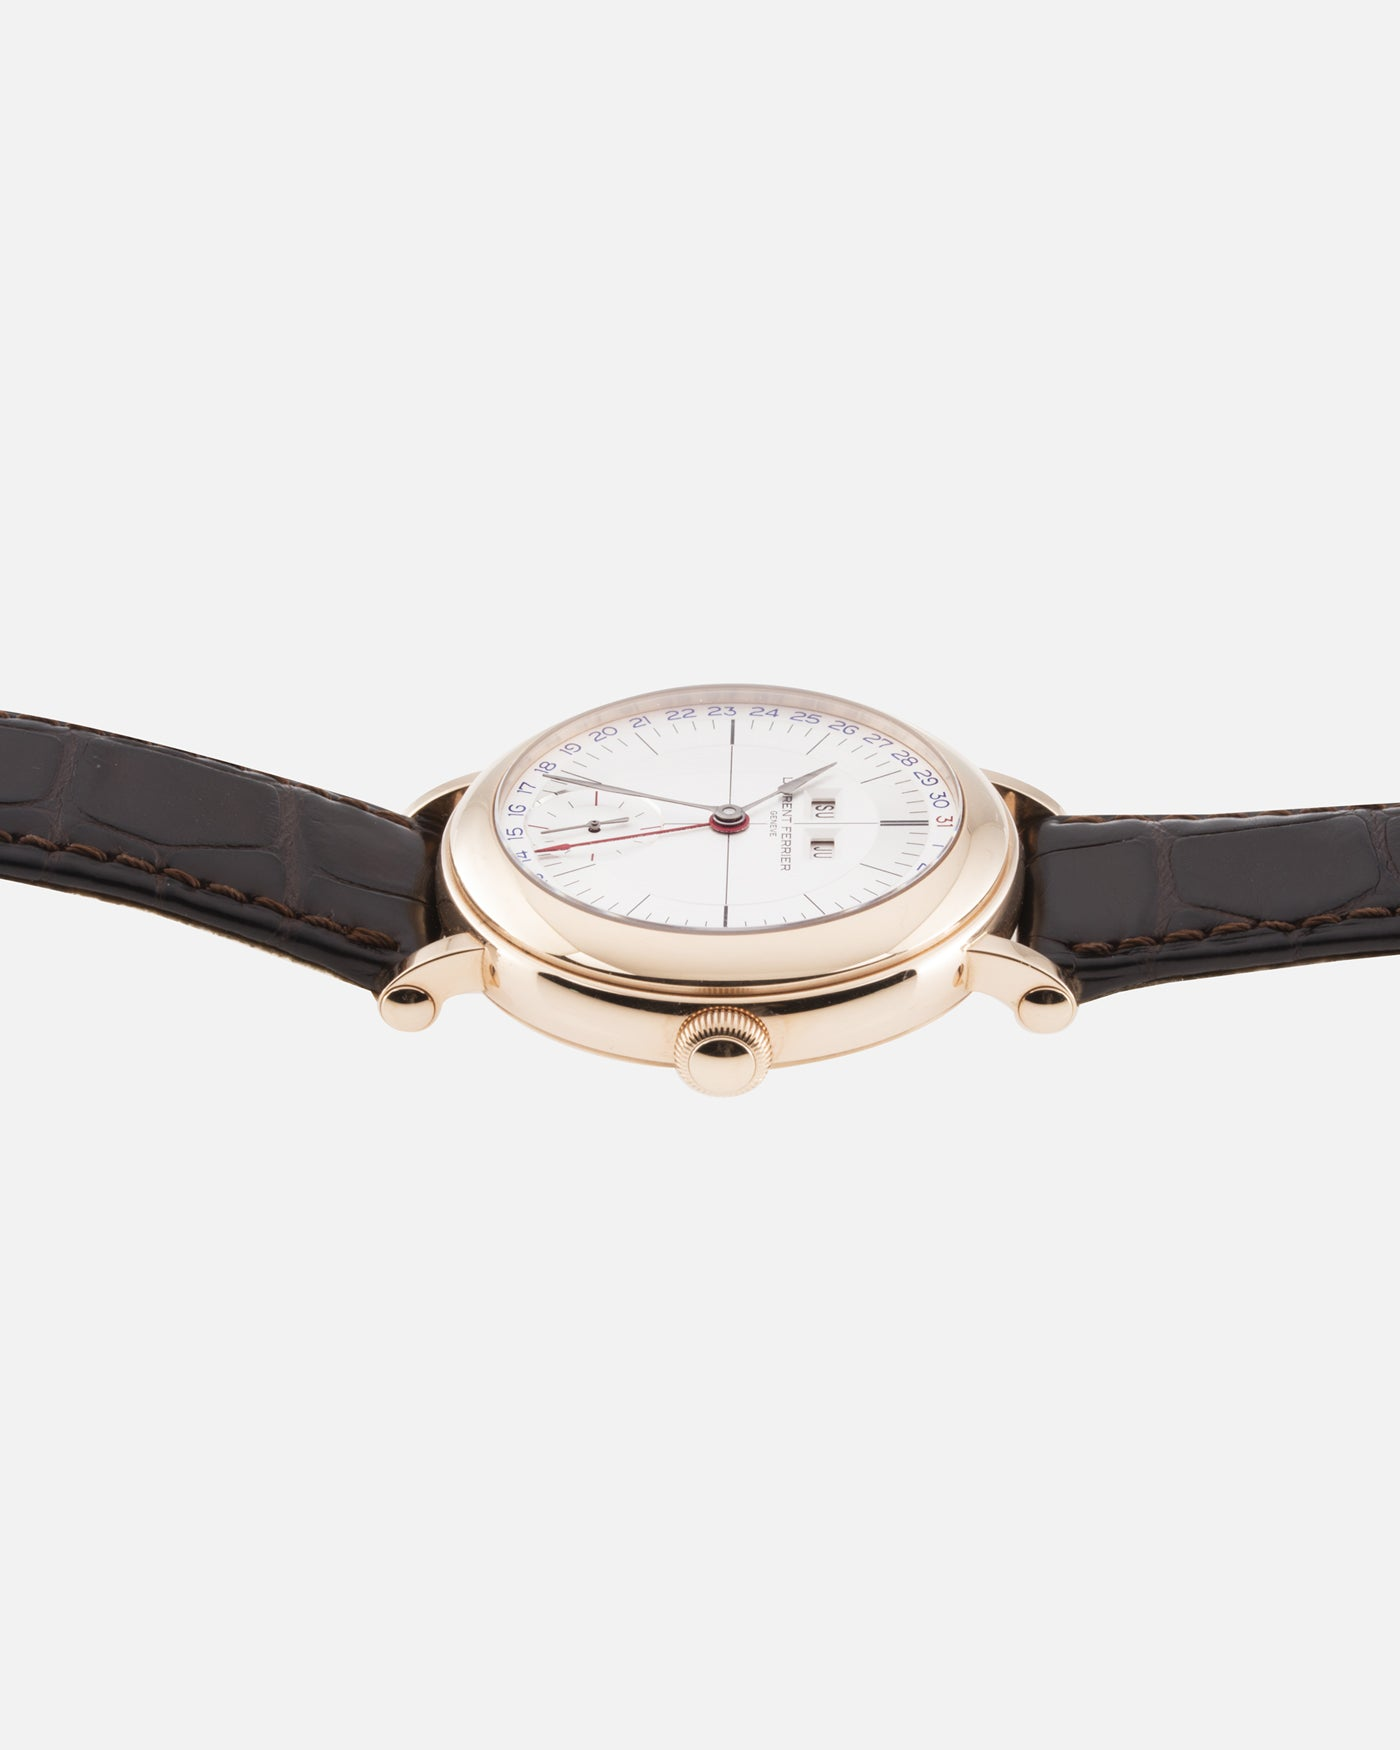 Laurent Ferrier Galet Annual Calendar Montre Ecole